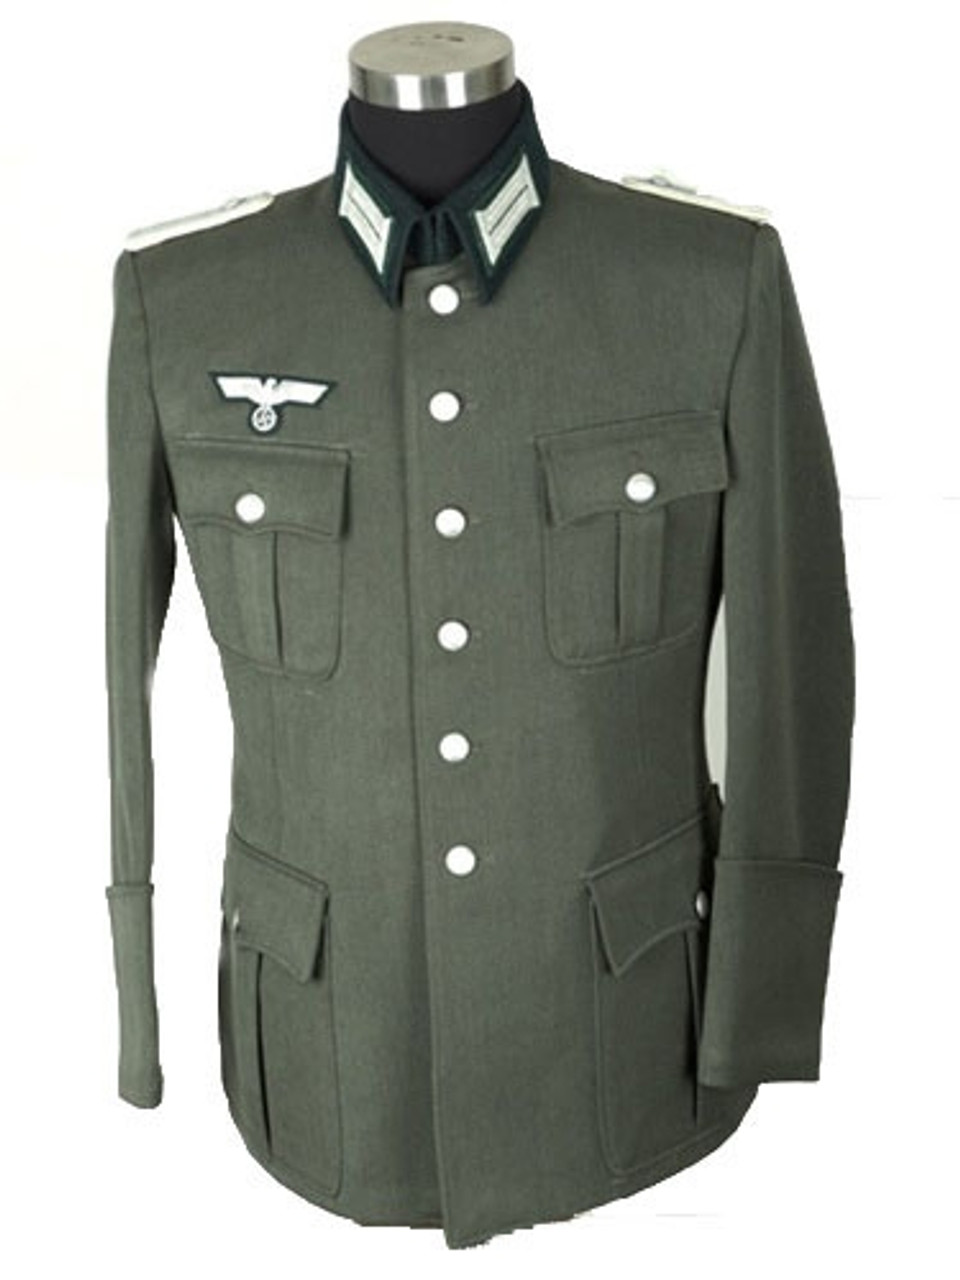 German Officer Dress Tunic in Gabardine Twill from Hessen Antique